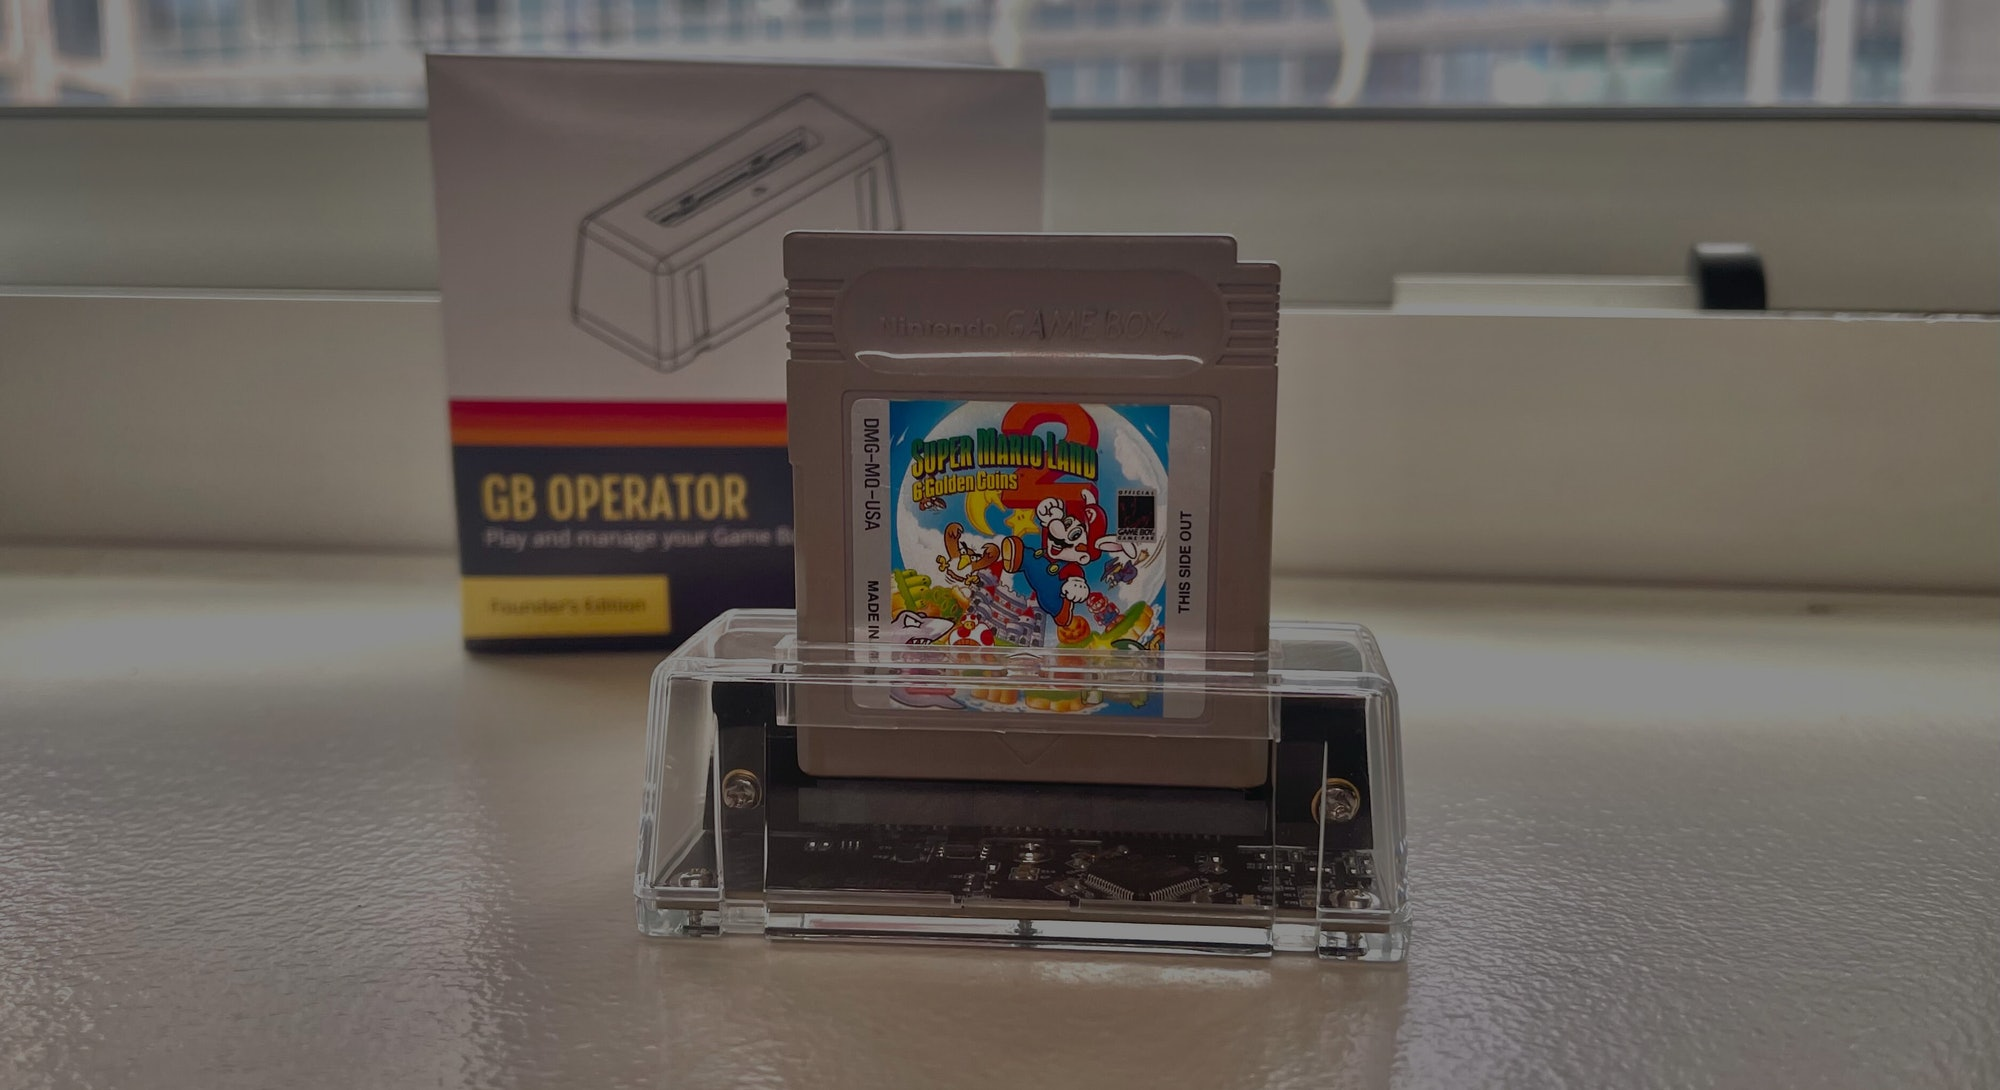 GB Operator review: The easiest way to play actual Game Boy games on PC and Mac